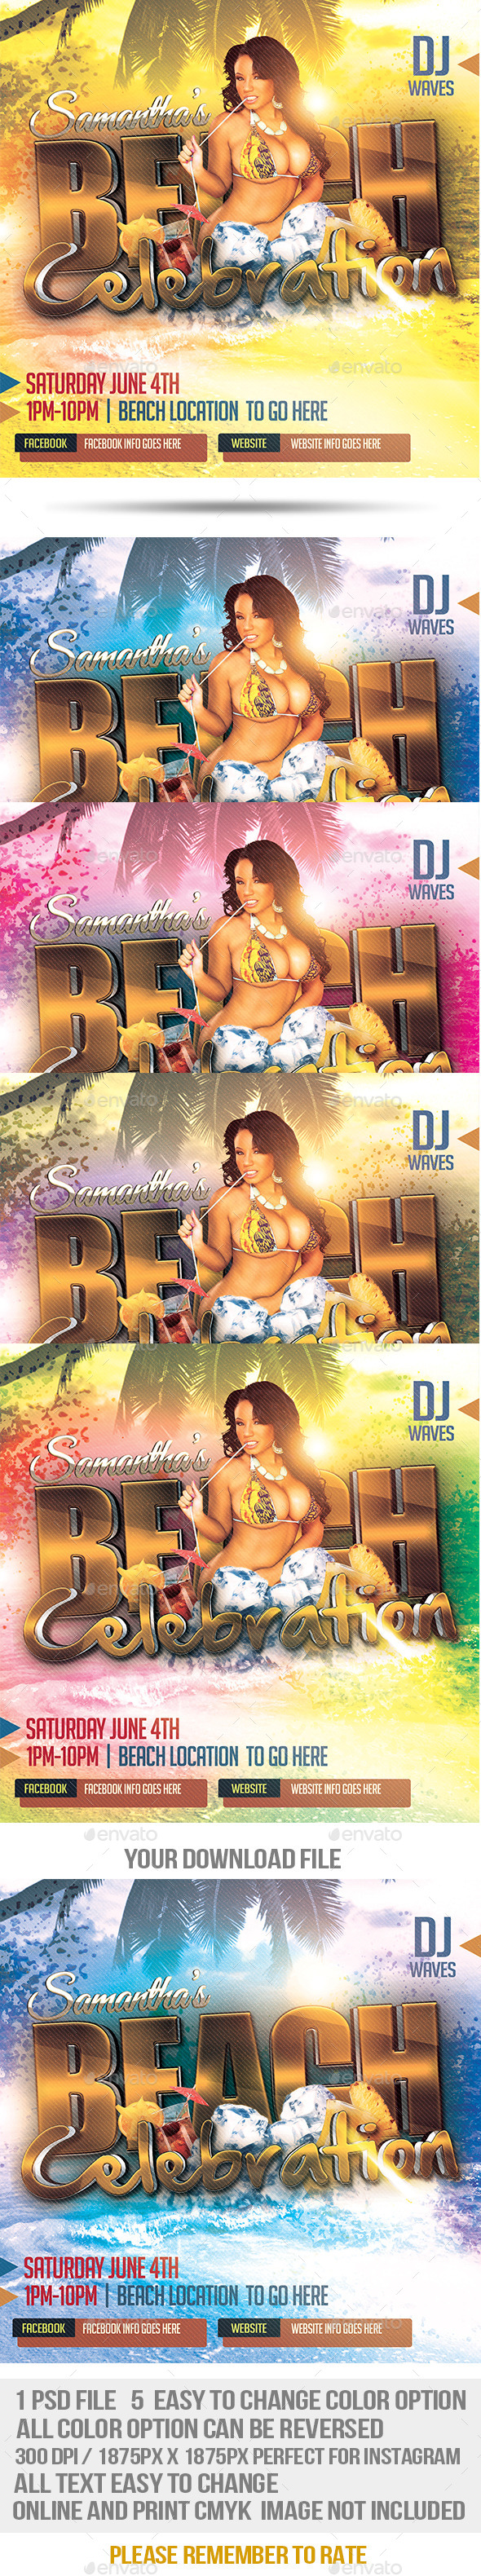 Beach Celebration Promotional Flyer - Events Flyers